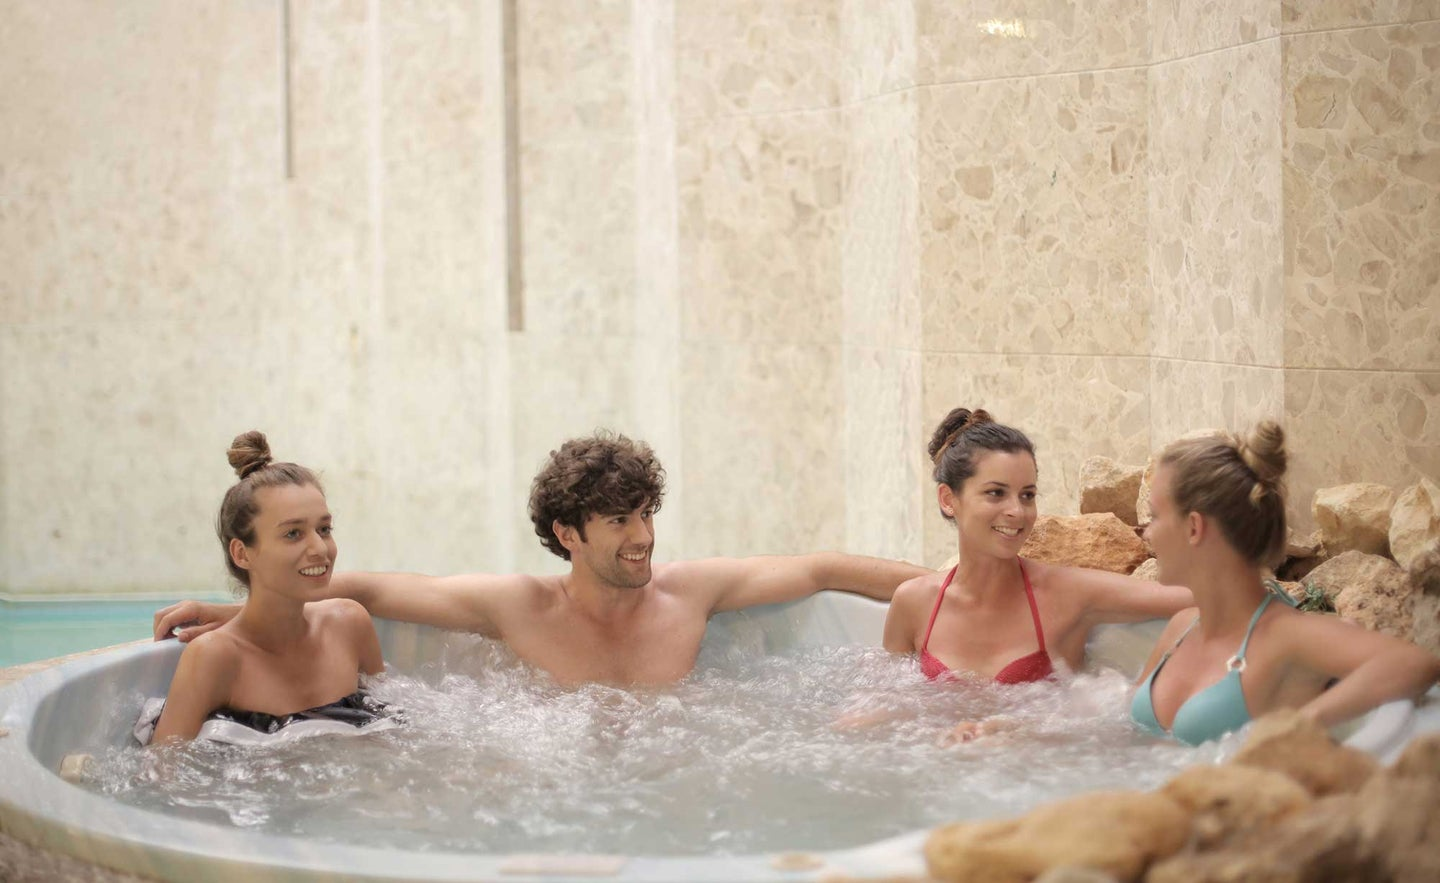 People in an inflatable hot tub